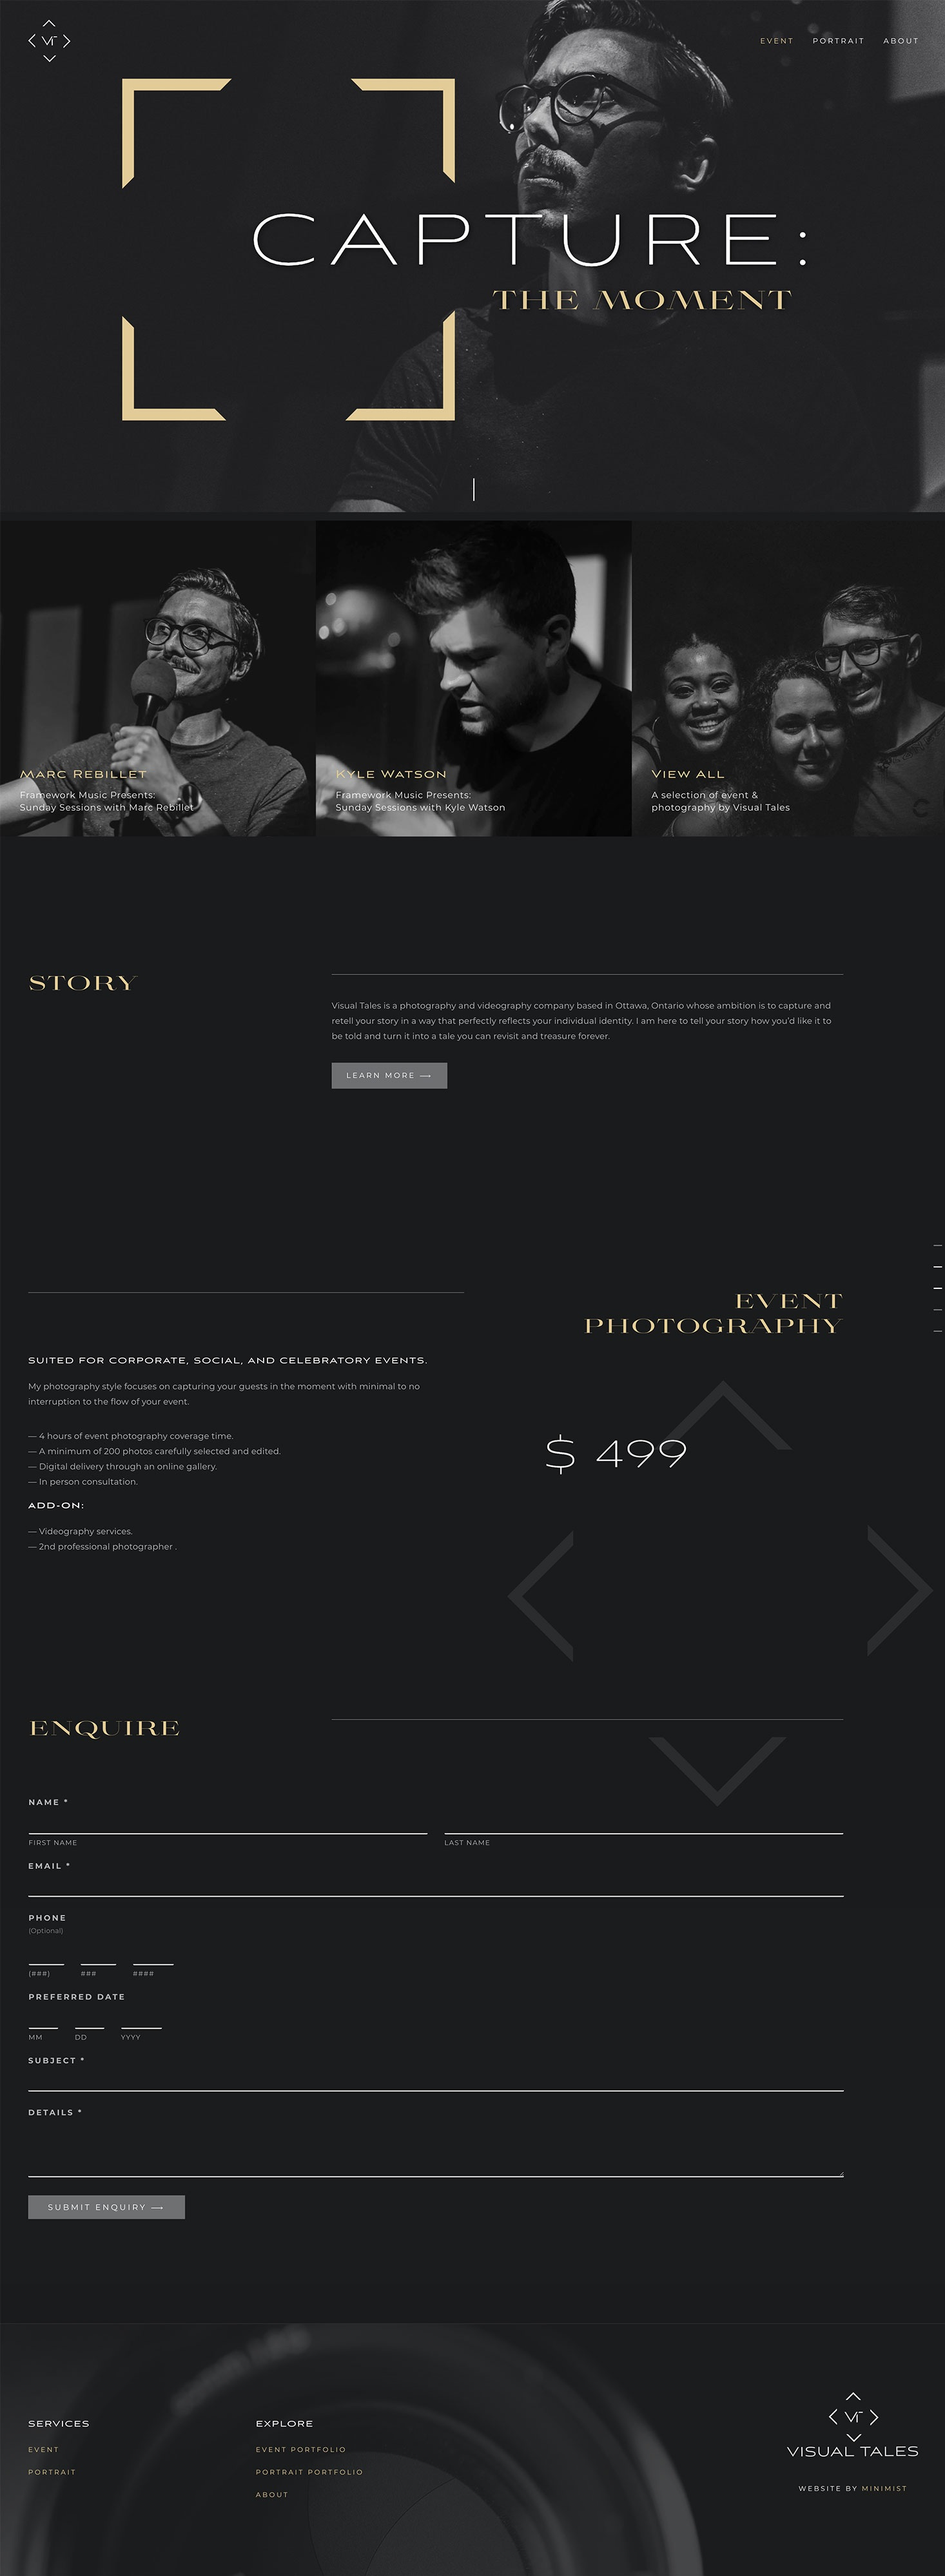 Minimalist Websites for Photographers